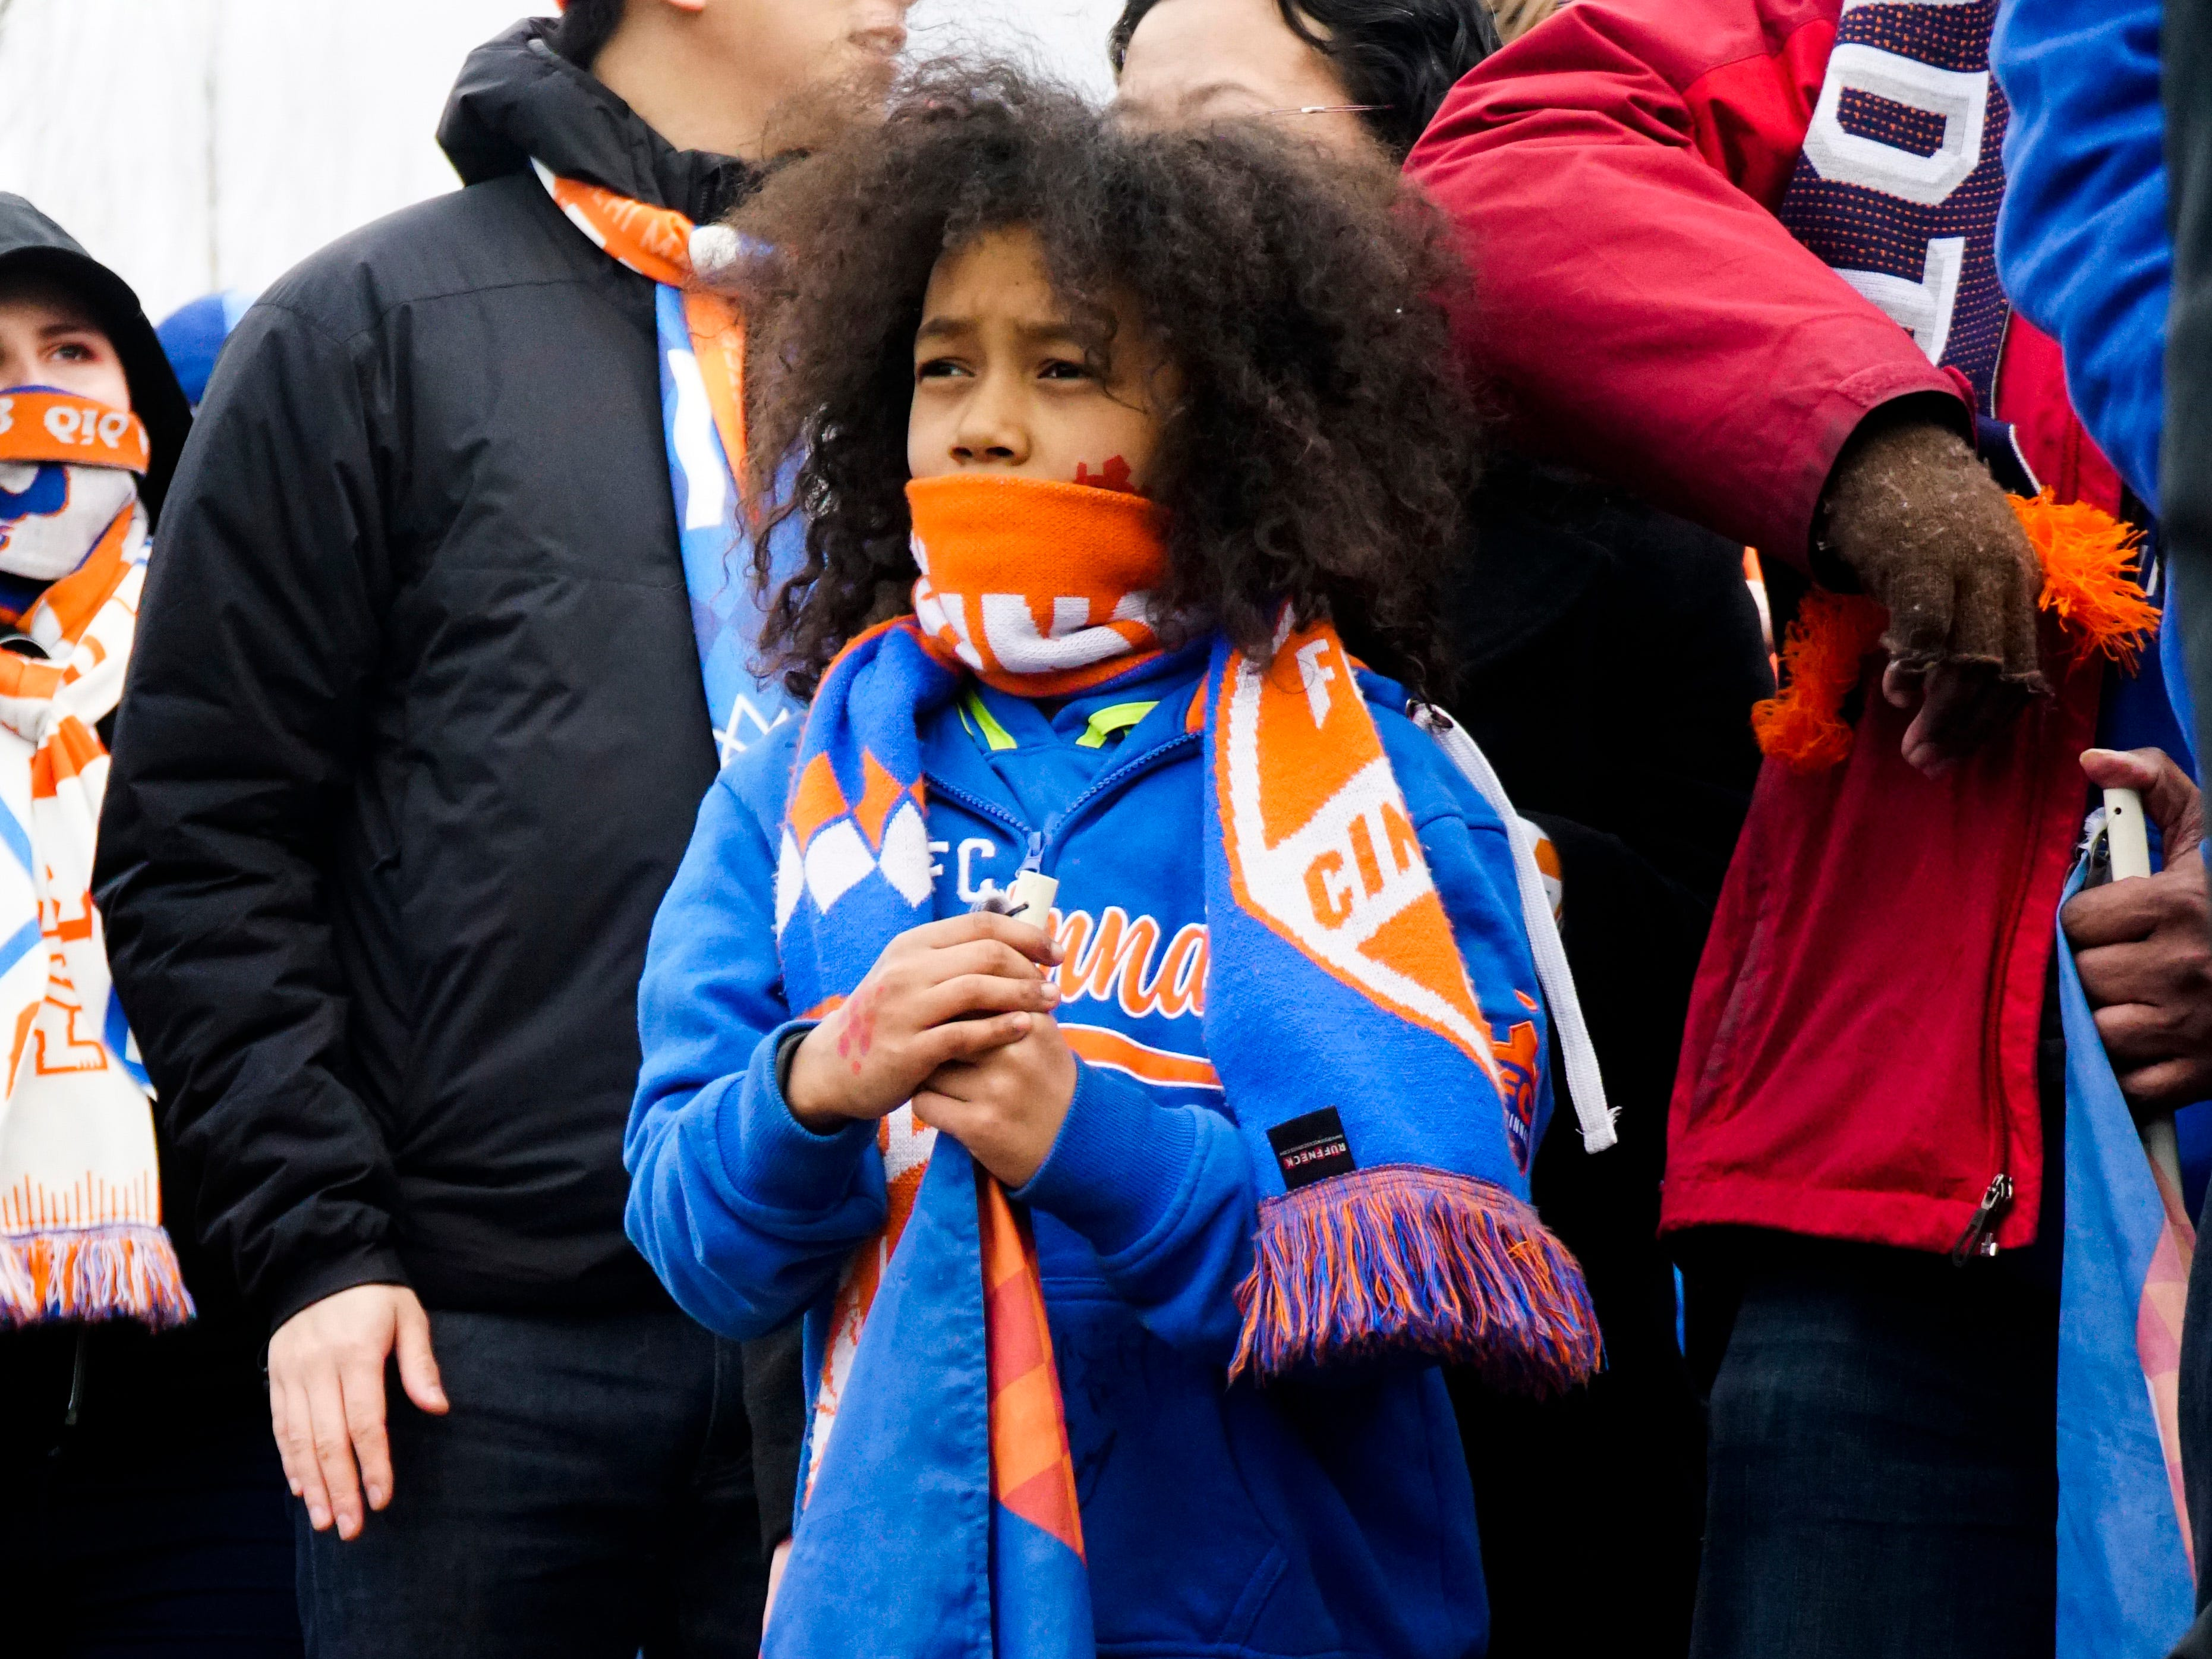 Maxfield Aloway, age eight, waits with his parents and other FC Cincinnati fans before marching to Nippert Stadium, March 17, 2019.